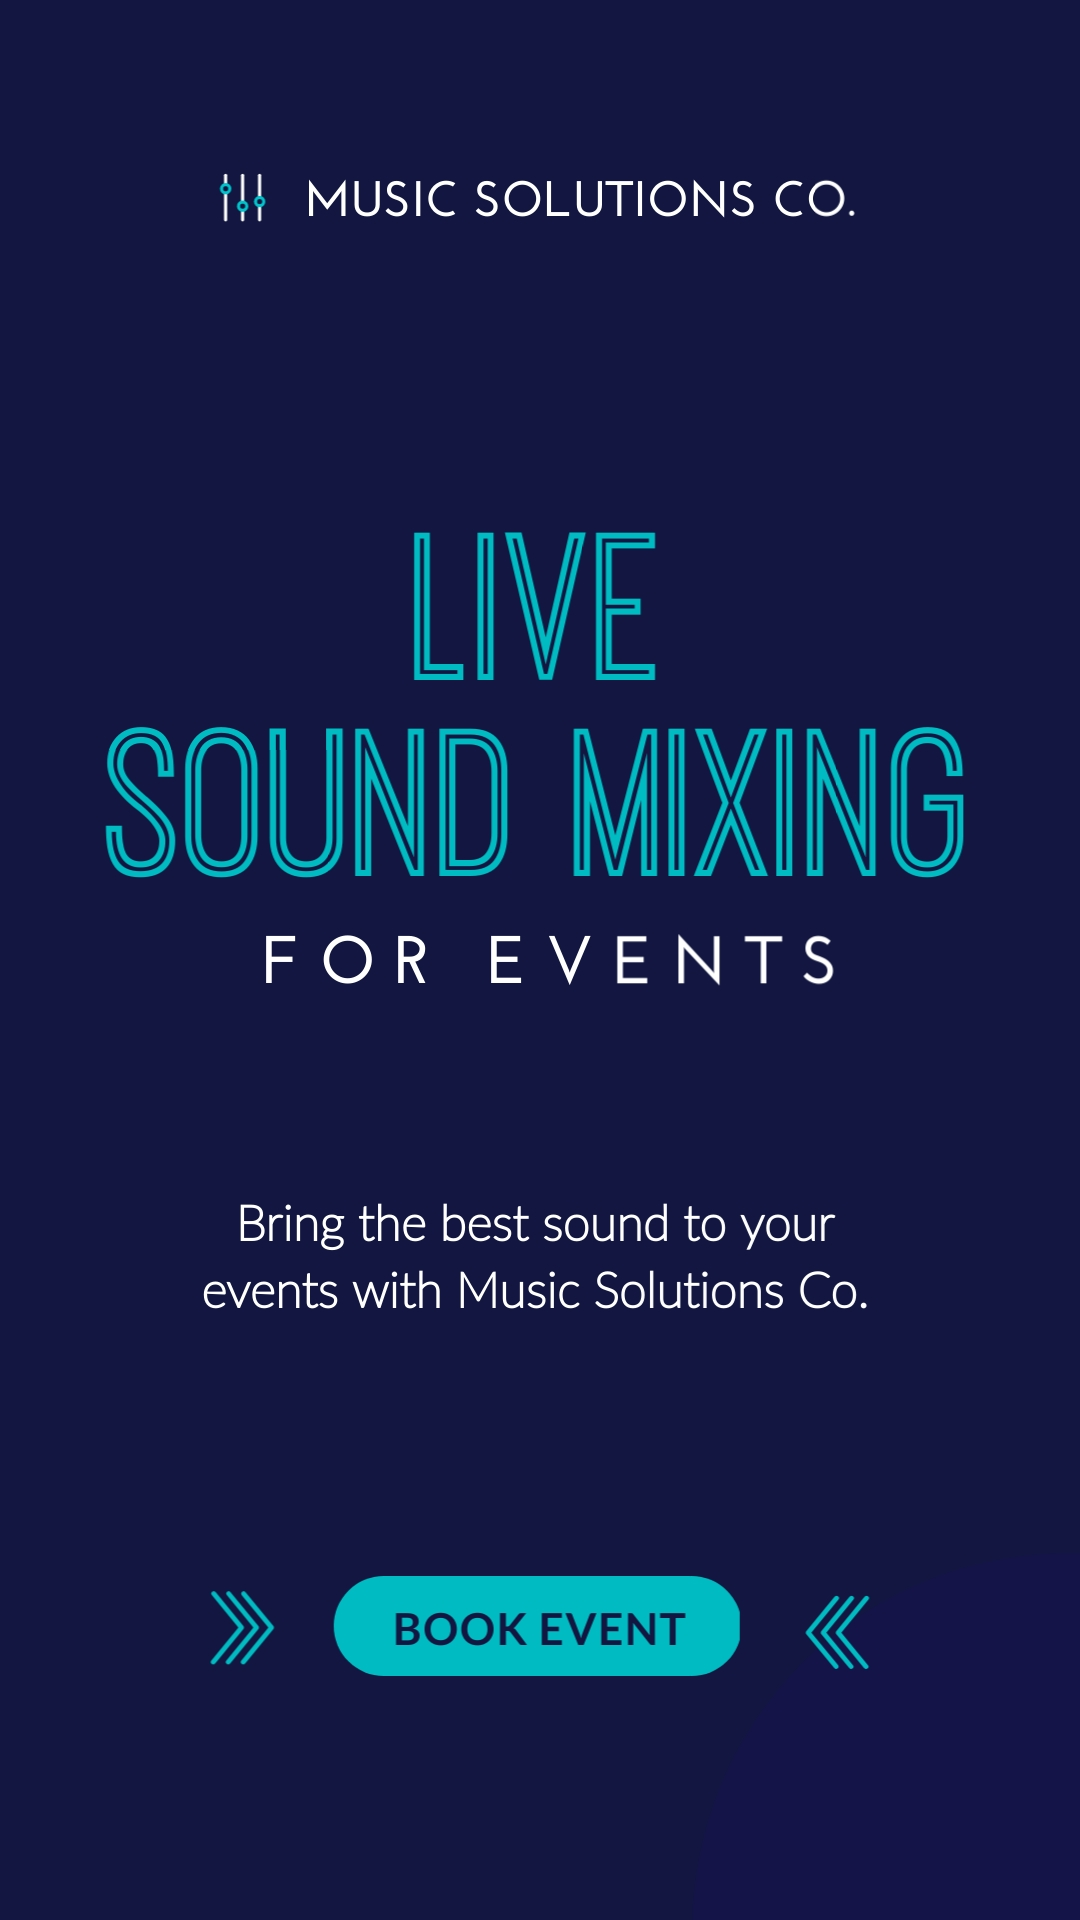 Live Sound Mixing Vertical Template